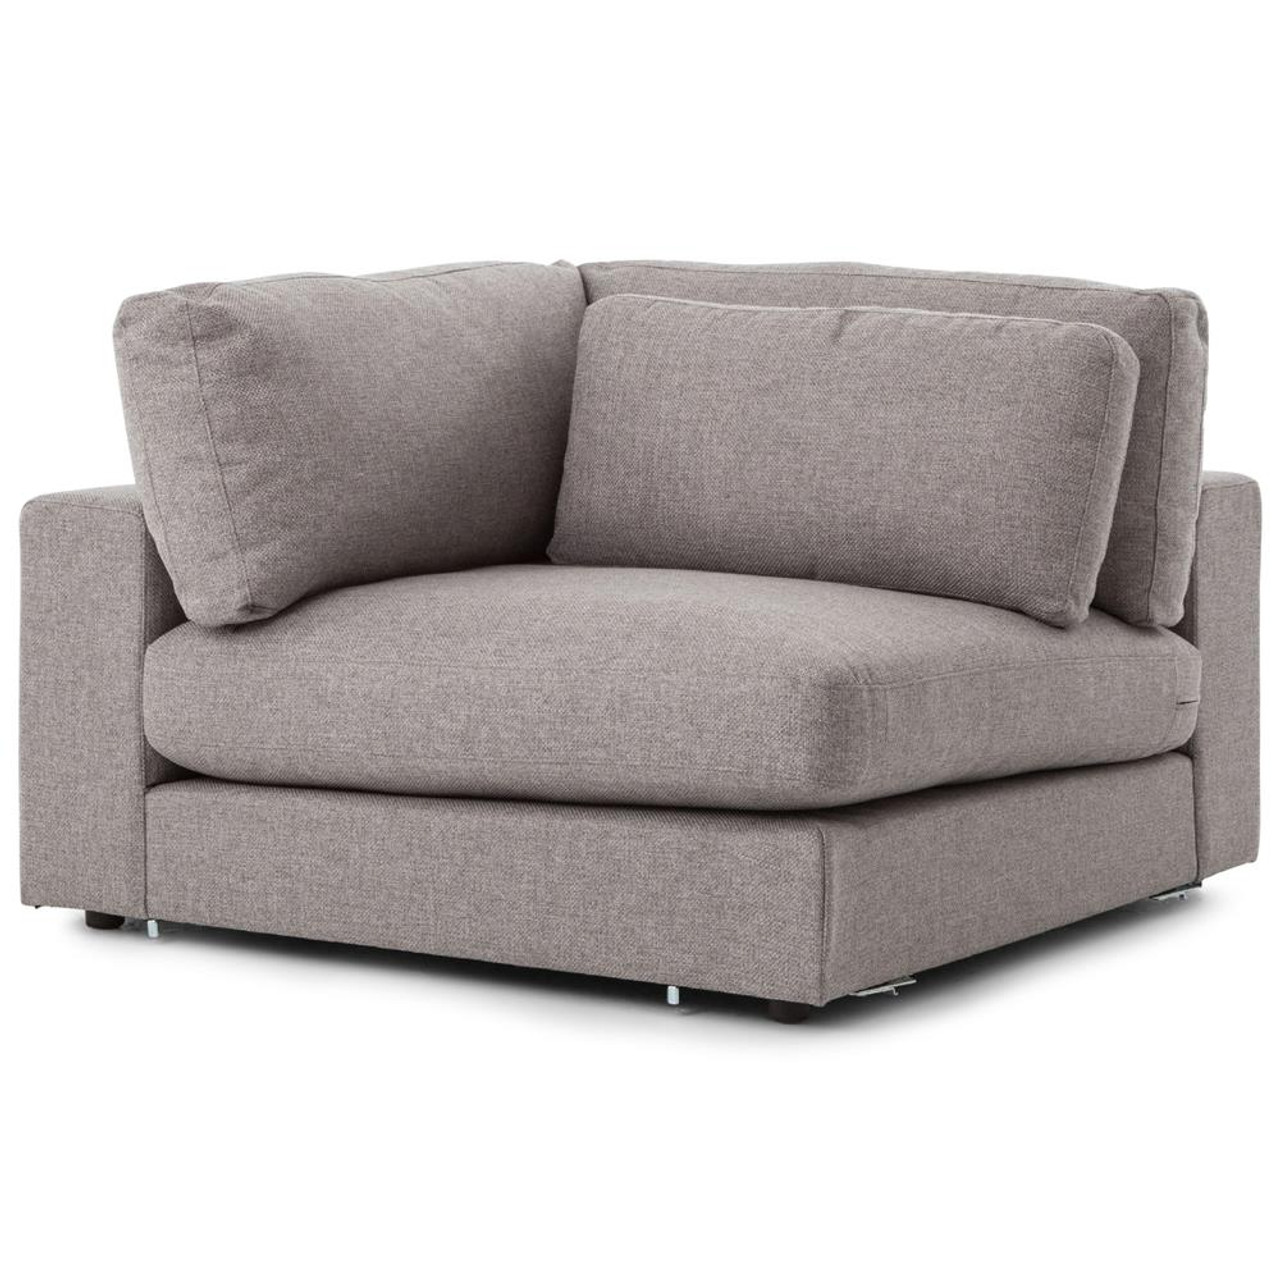 Charmant Bloor Modern Gray Sectional Corner Piece